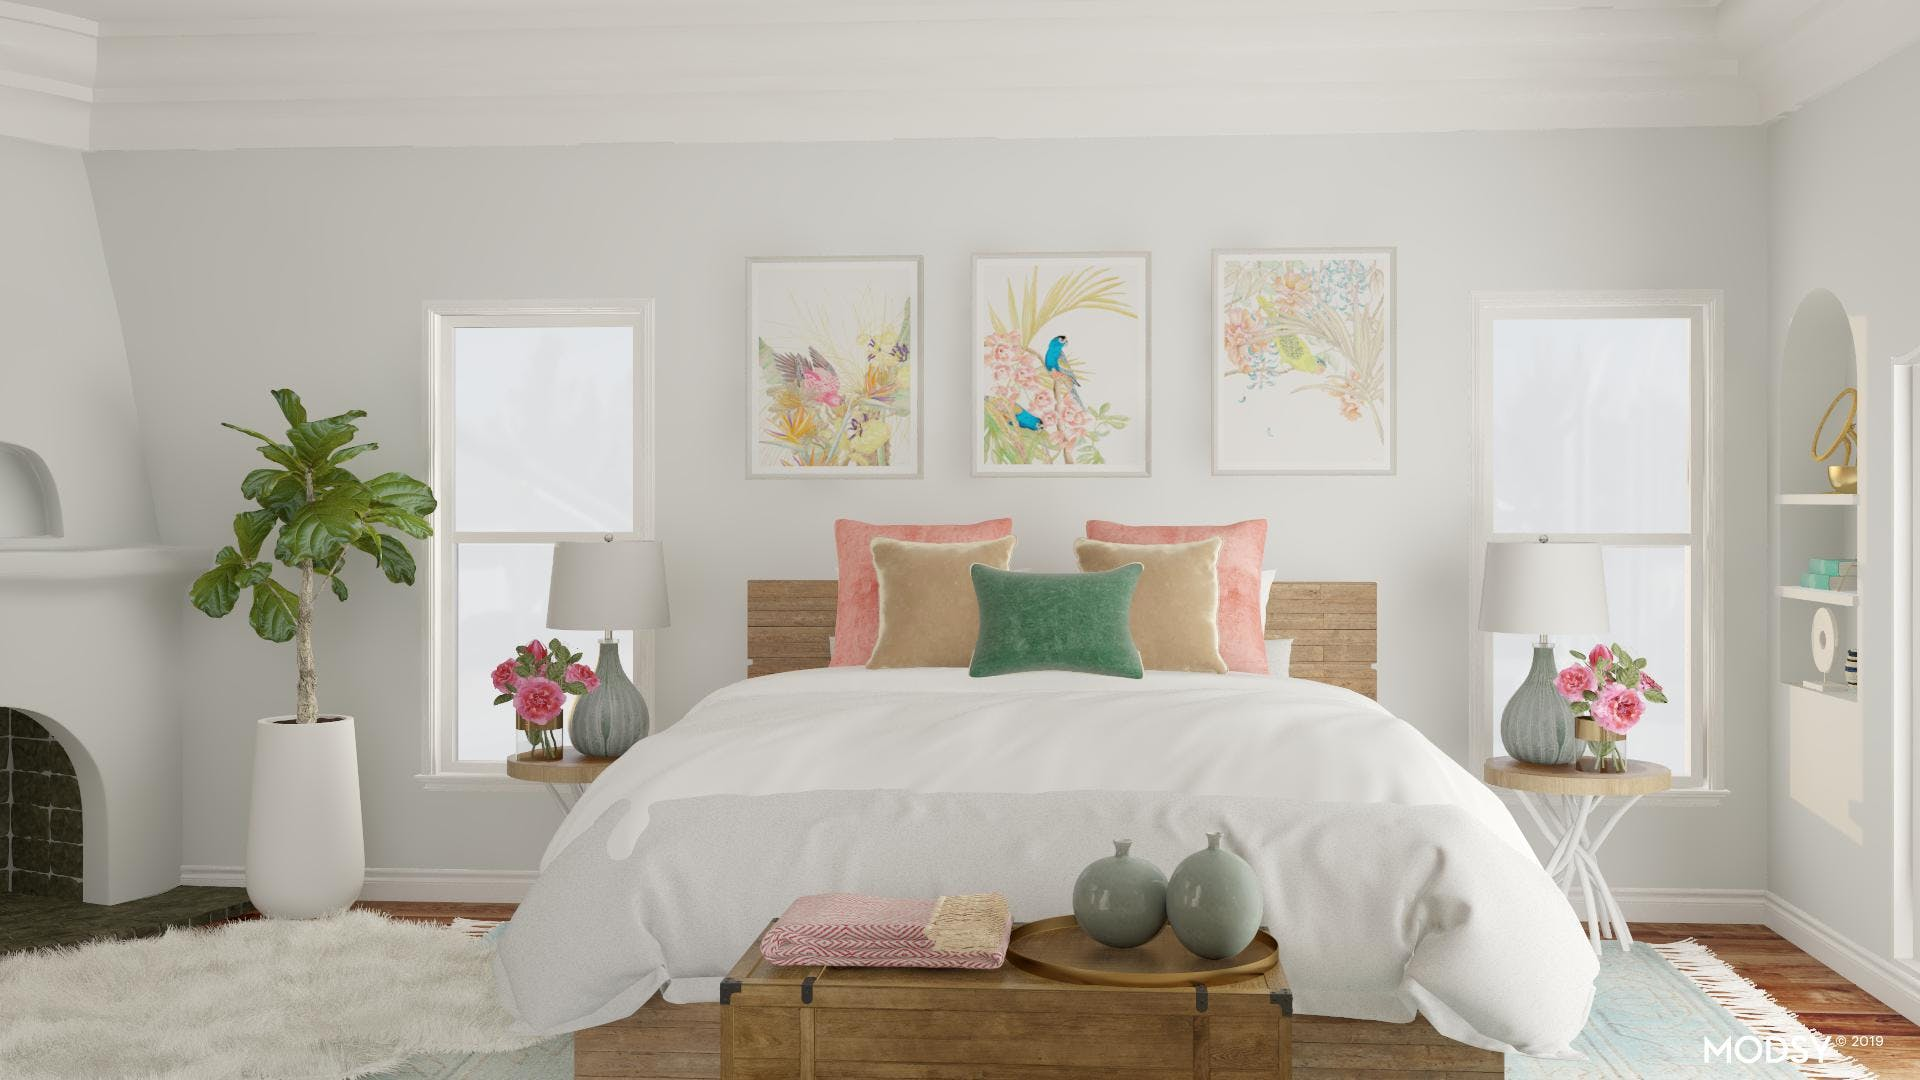 Rustic Bedroom Retreat with Pops of Color